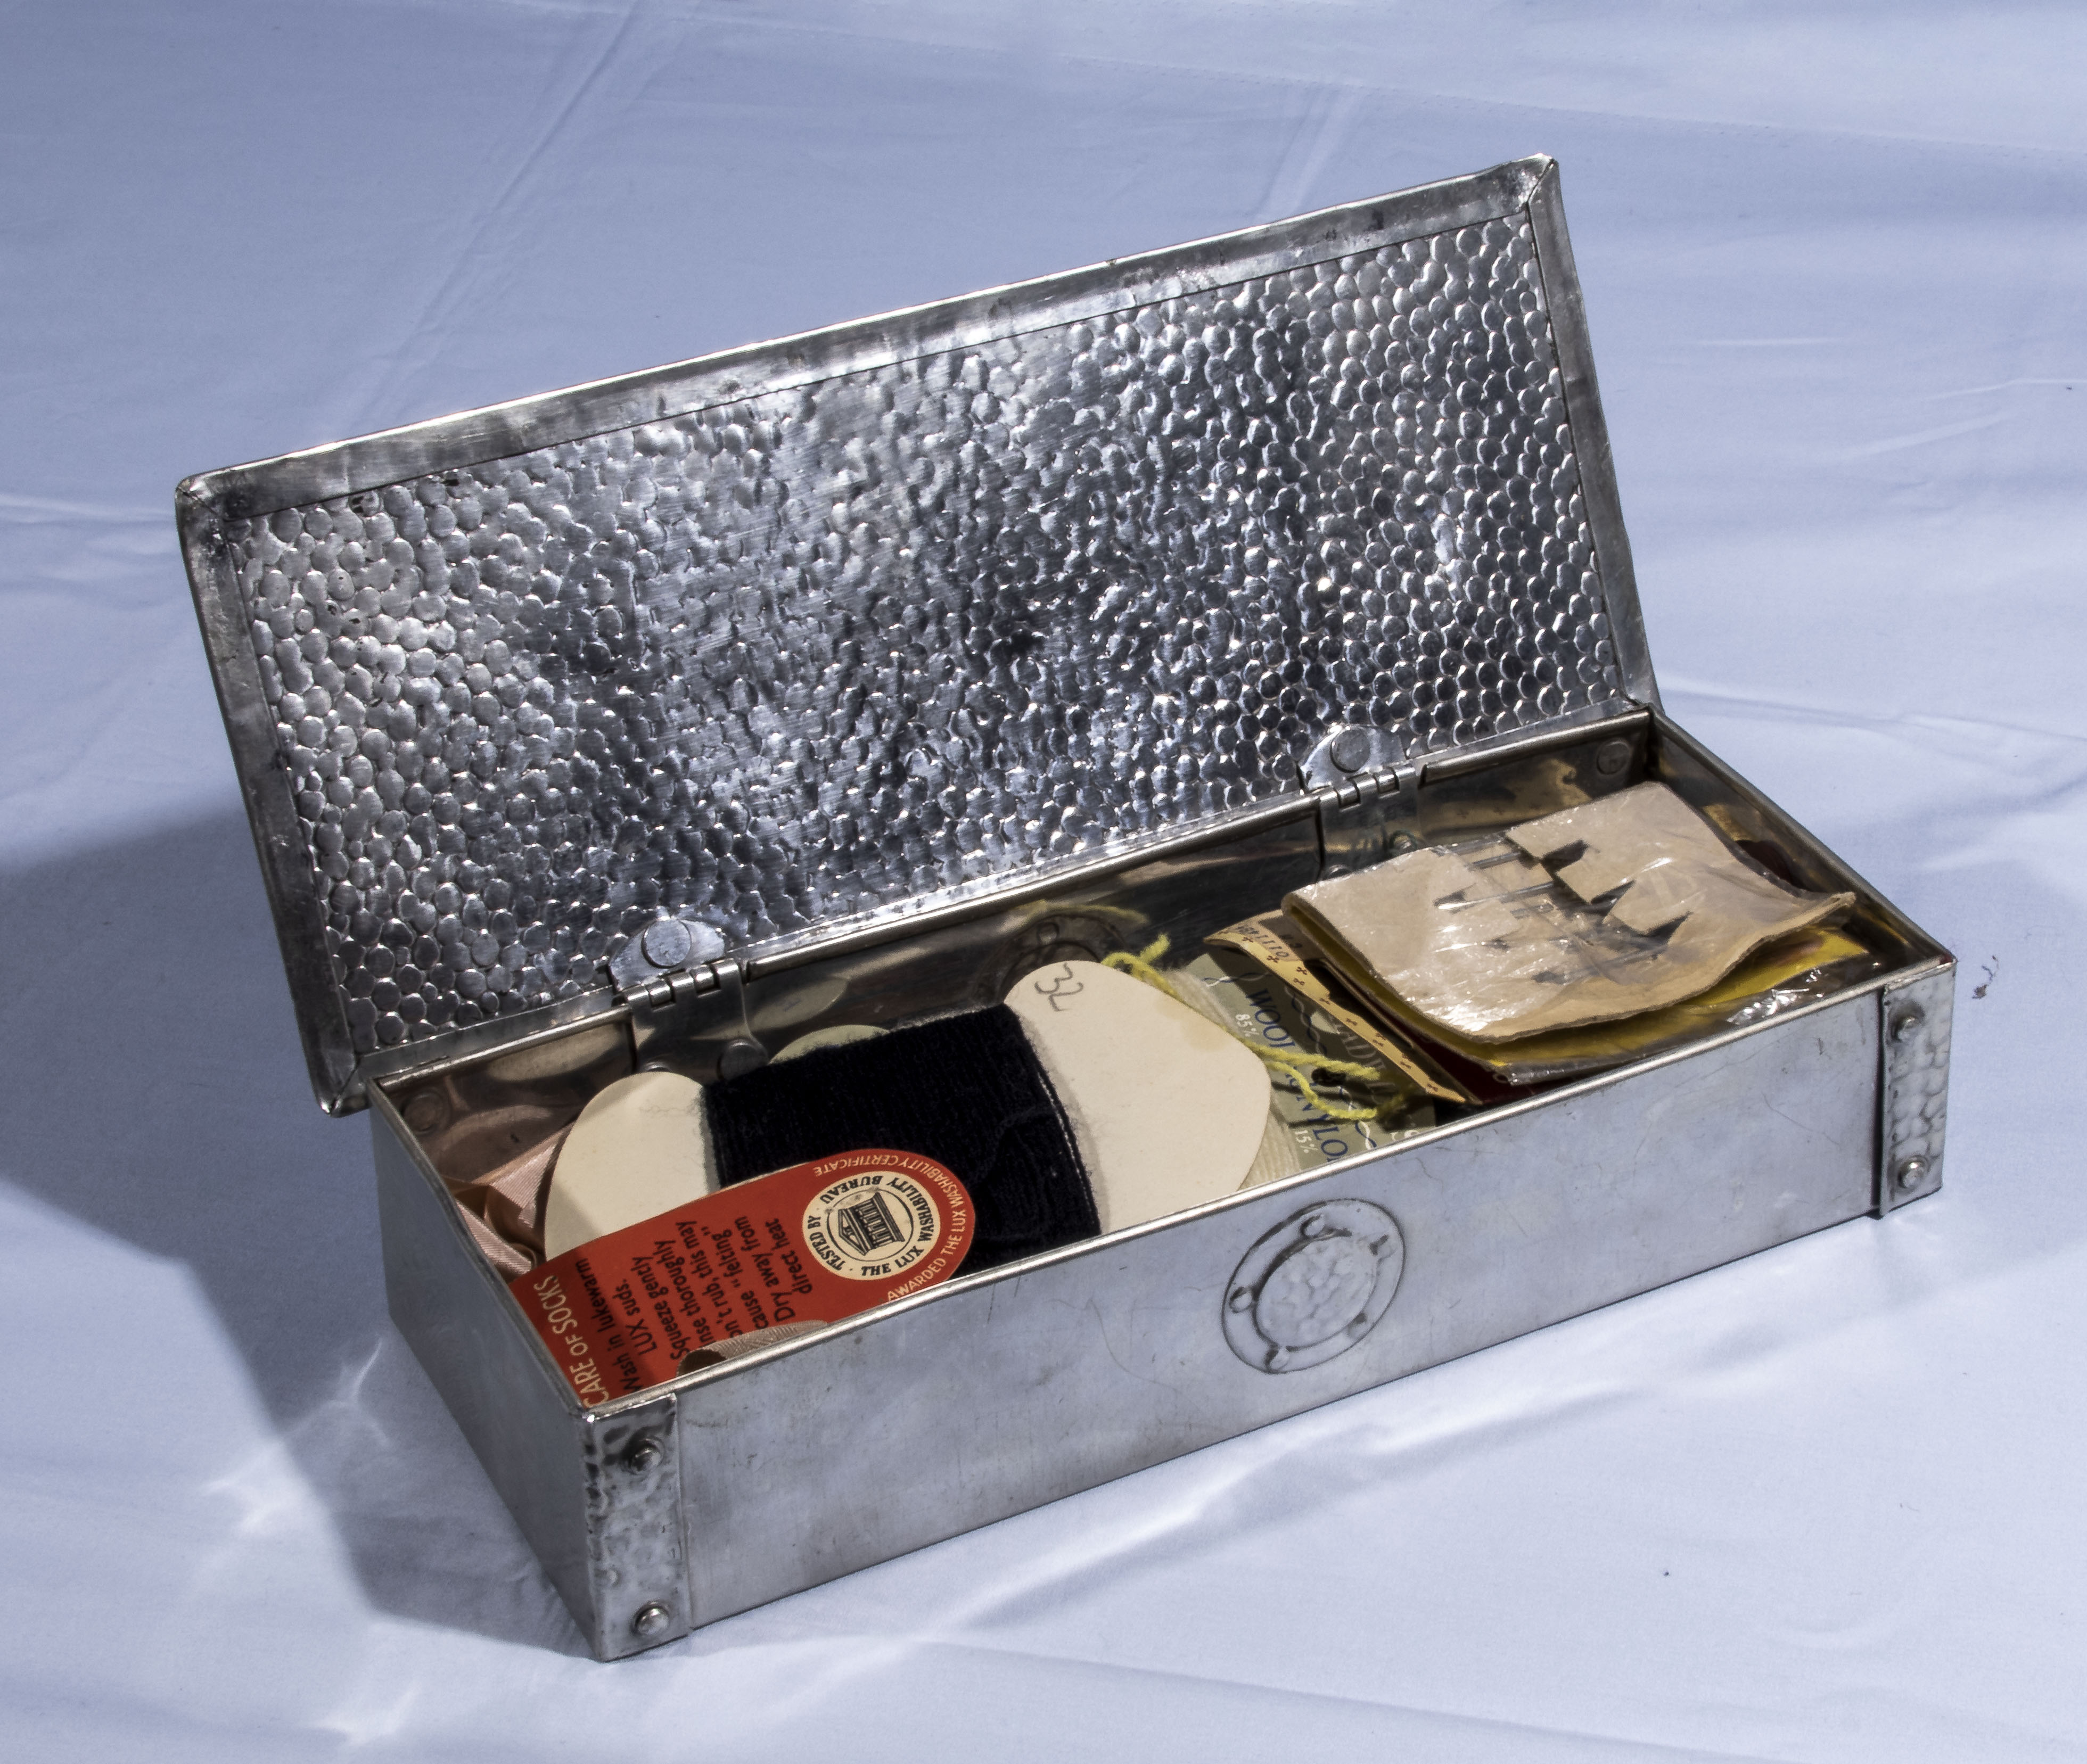 Art Noveau 'style' box containing vintage sewing materials - Image 2 of 2